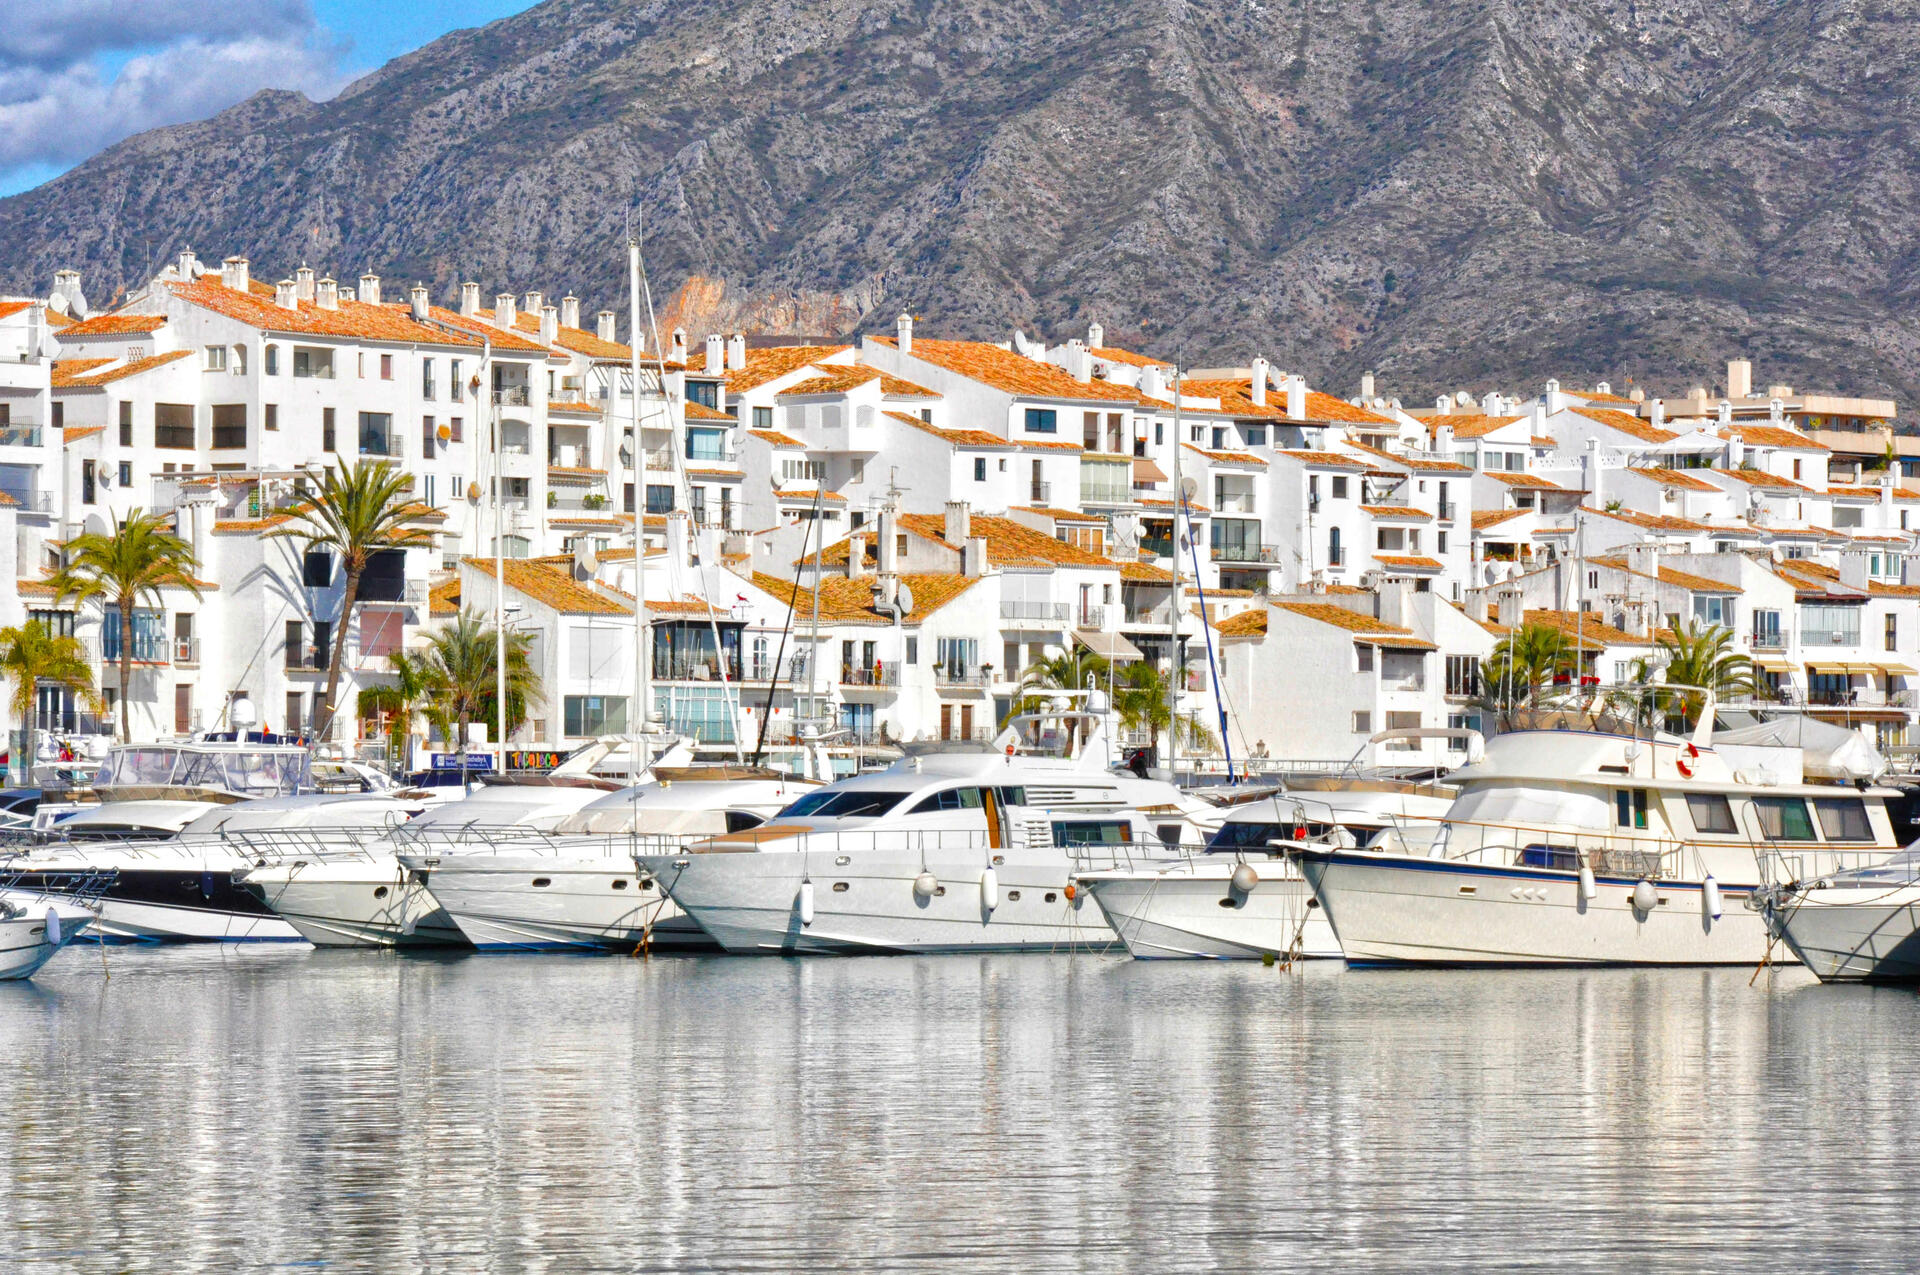 Harbour in Costa del Sol, Spain